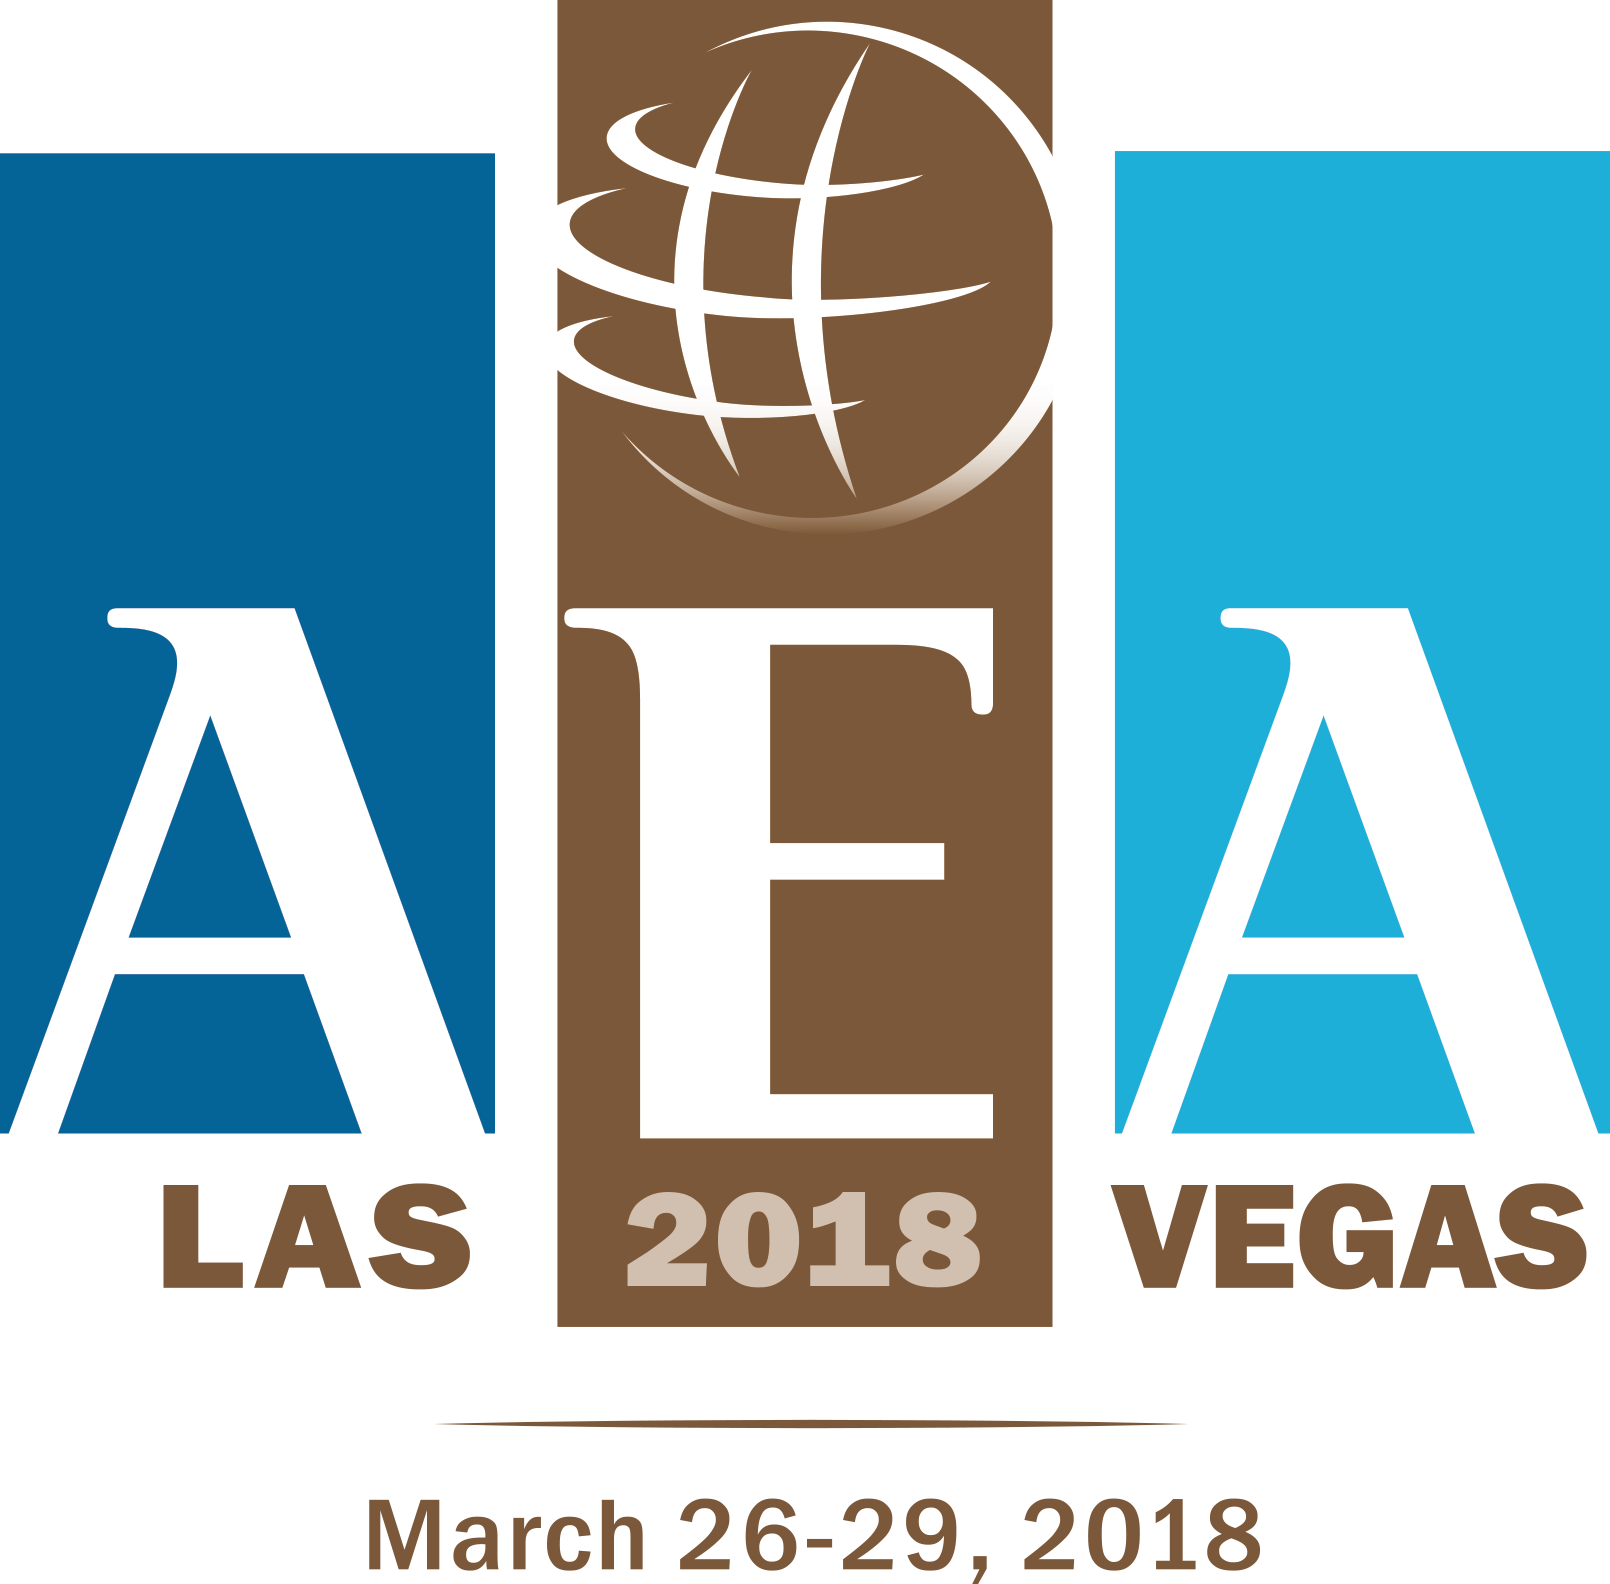 The aircraft electronics association aea convention 2016 logo xflitez Image collections